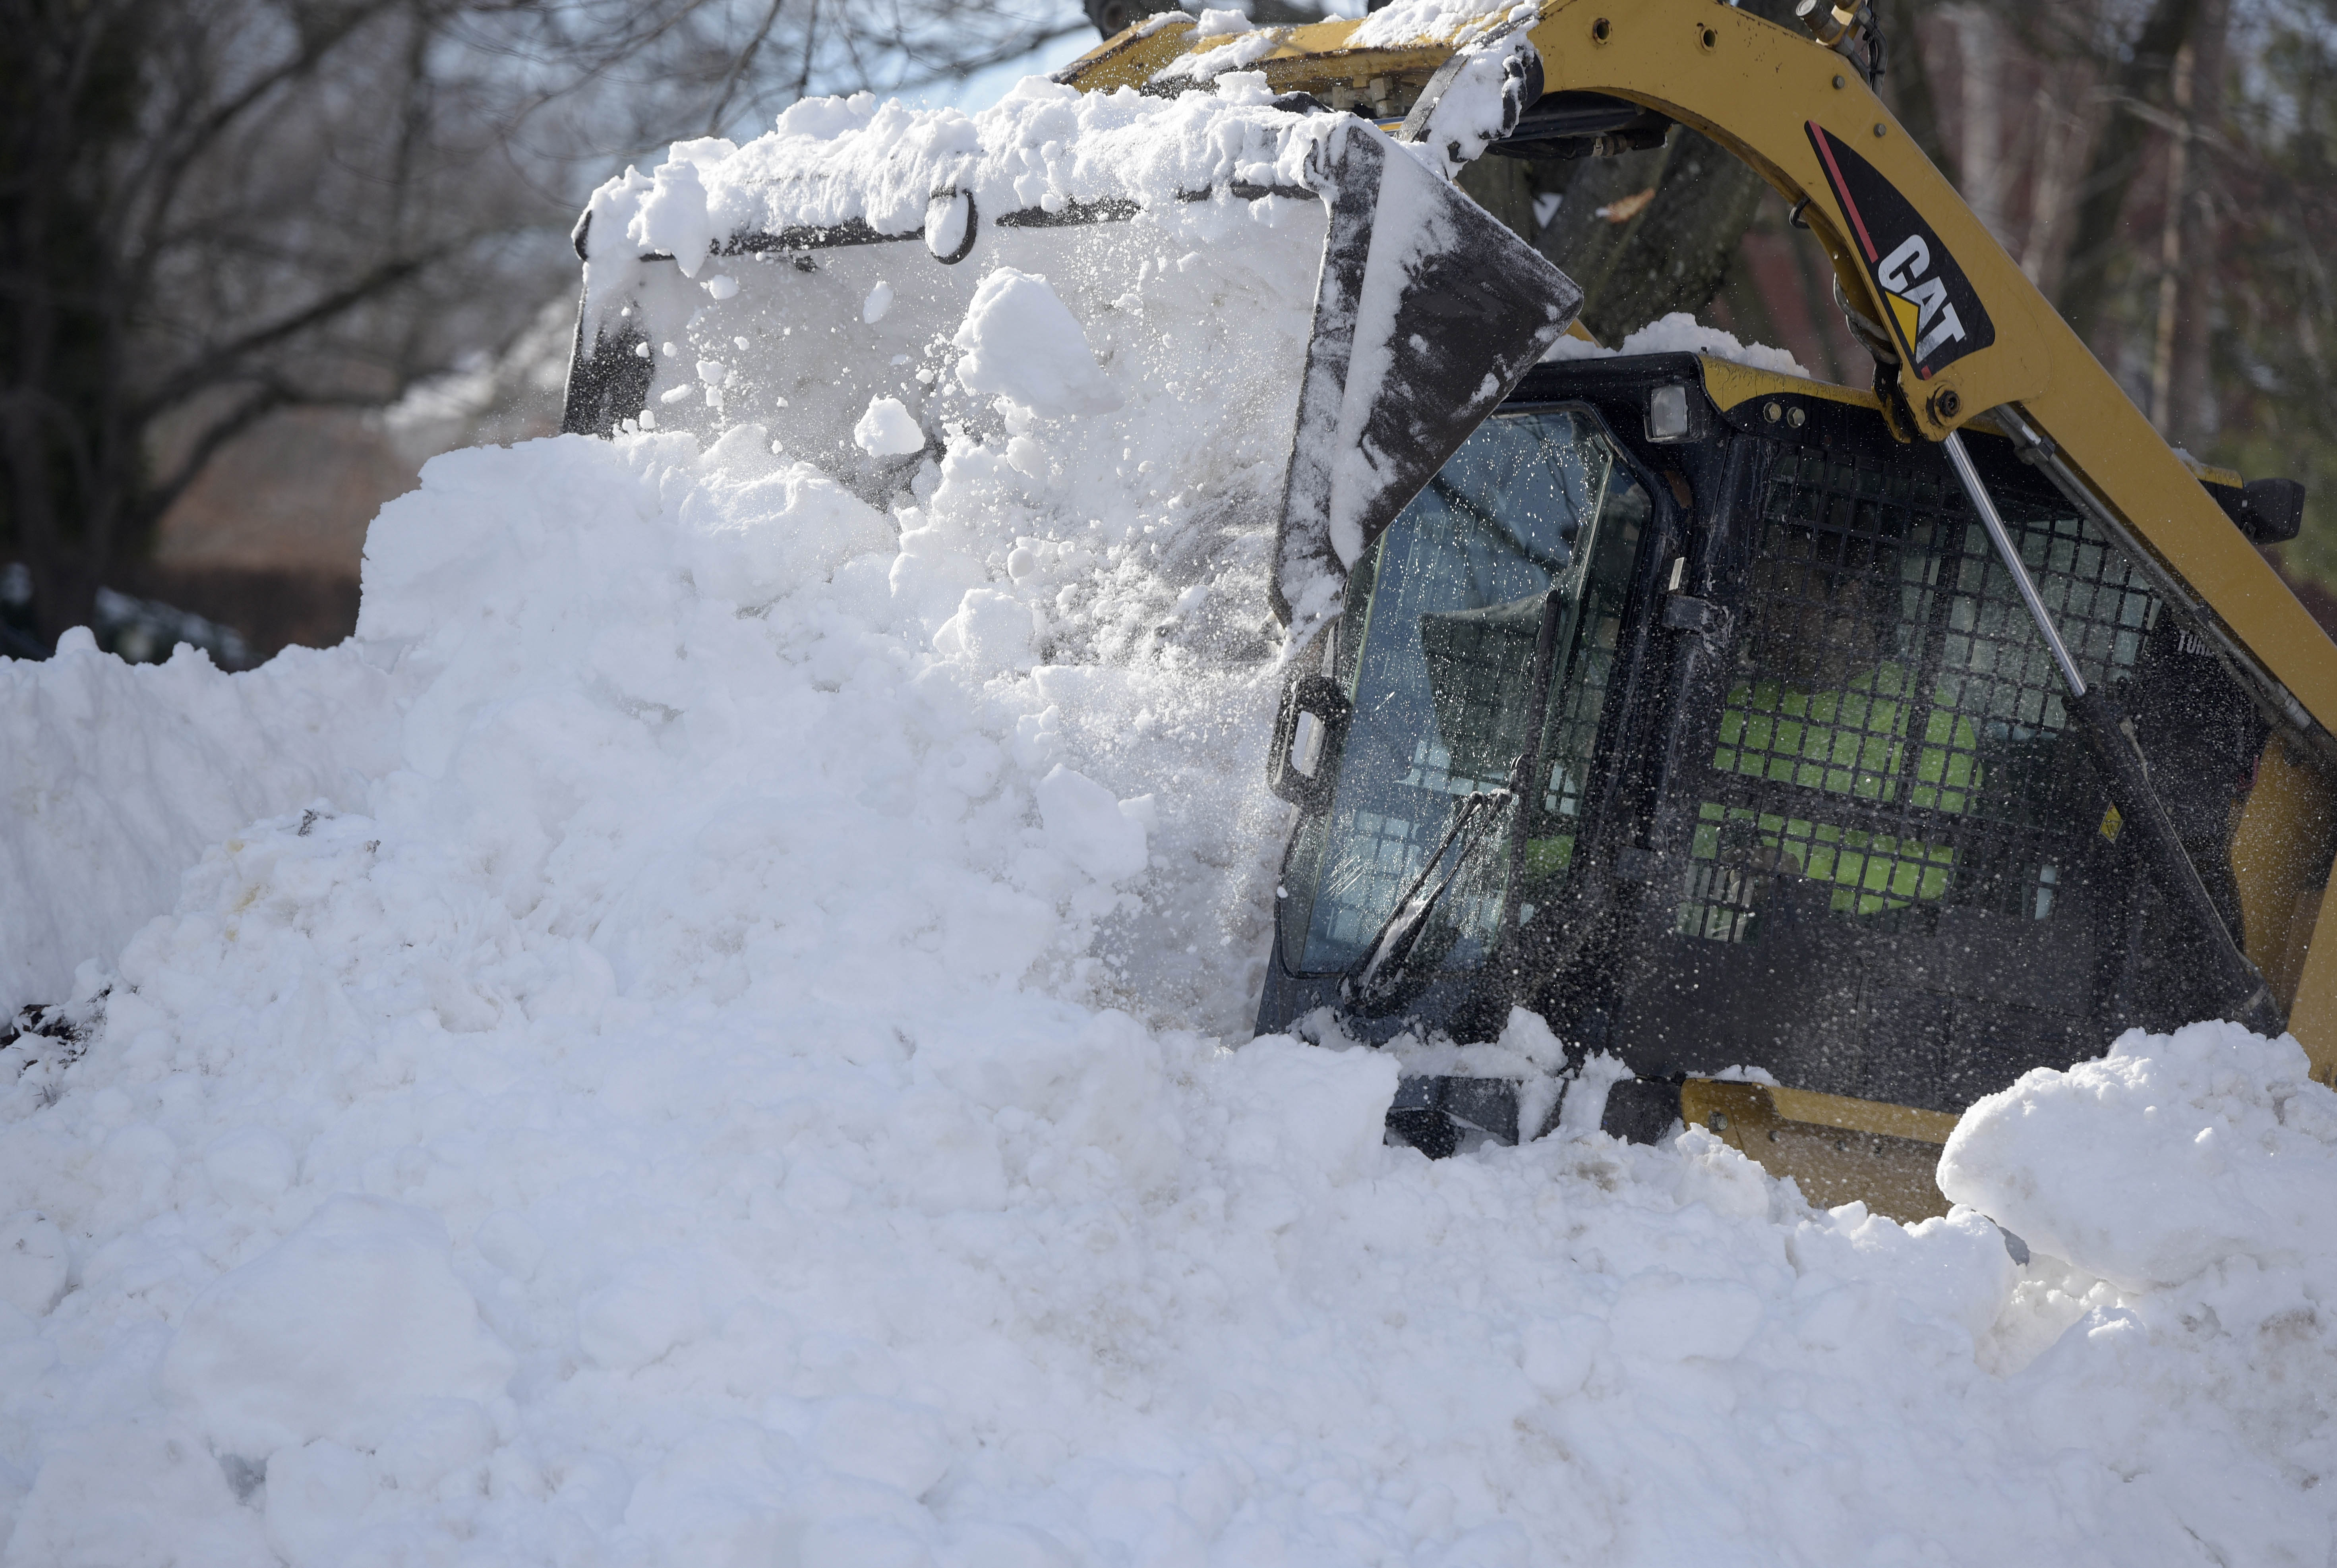 Would snow melters have really helped with post-blizzard cleanup?